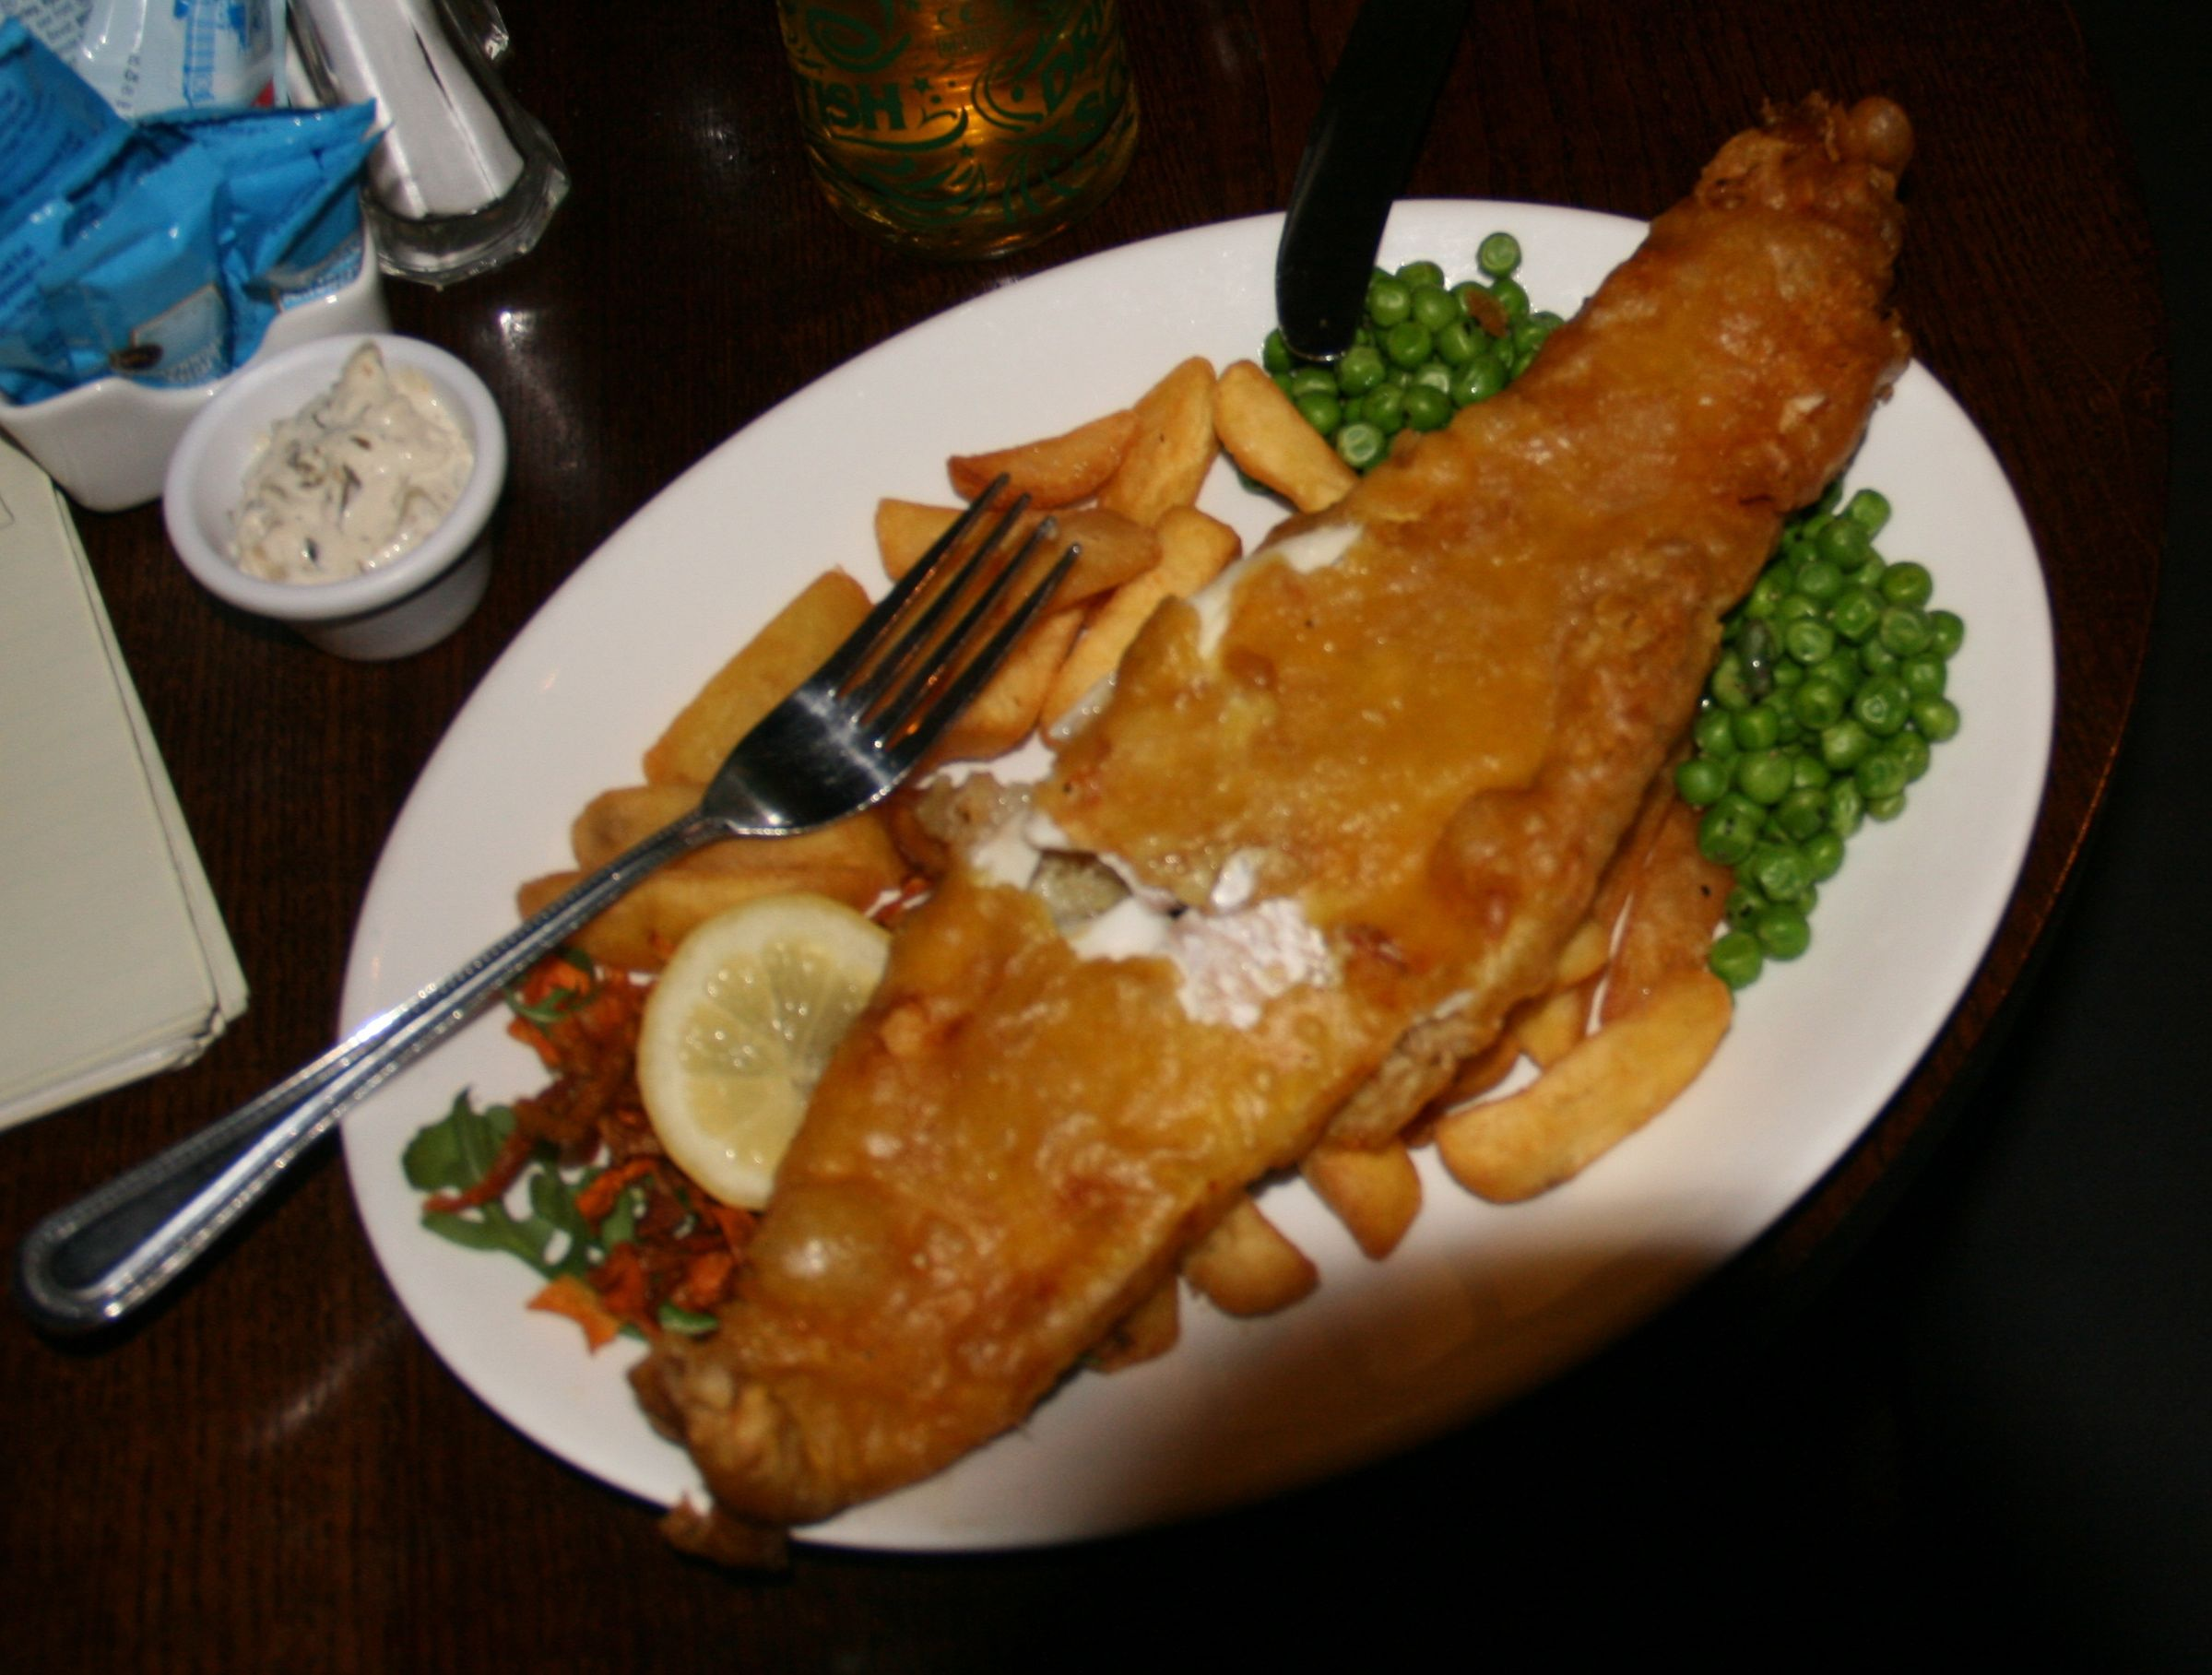 Fish and chips with a fine local ale at the Word's End on the Royal Mile is combines quality and quantity.